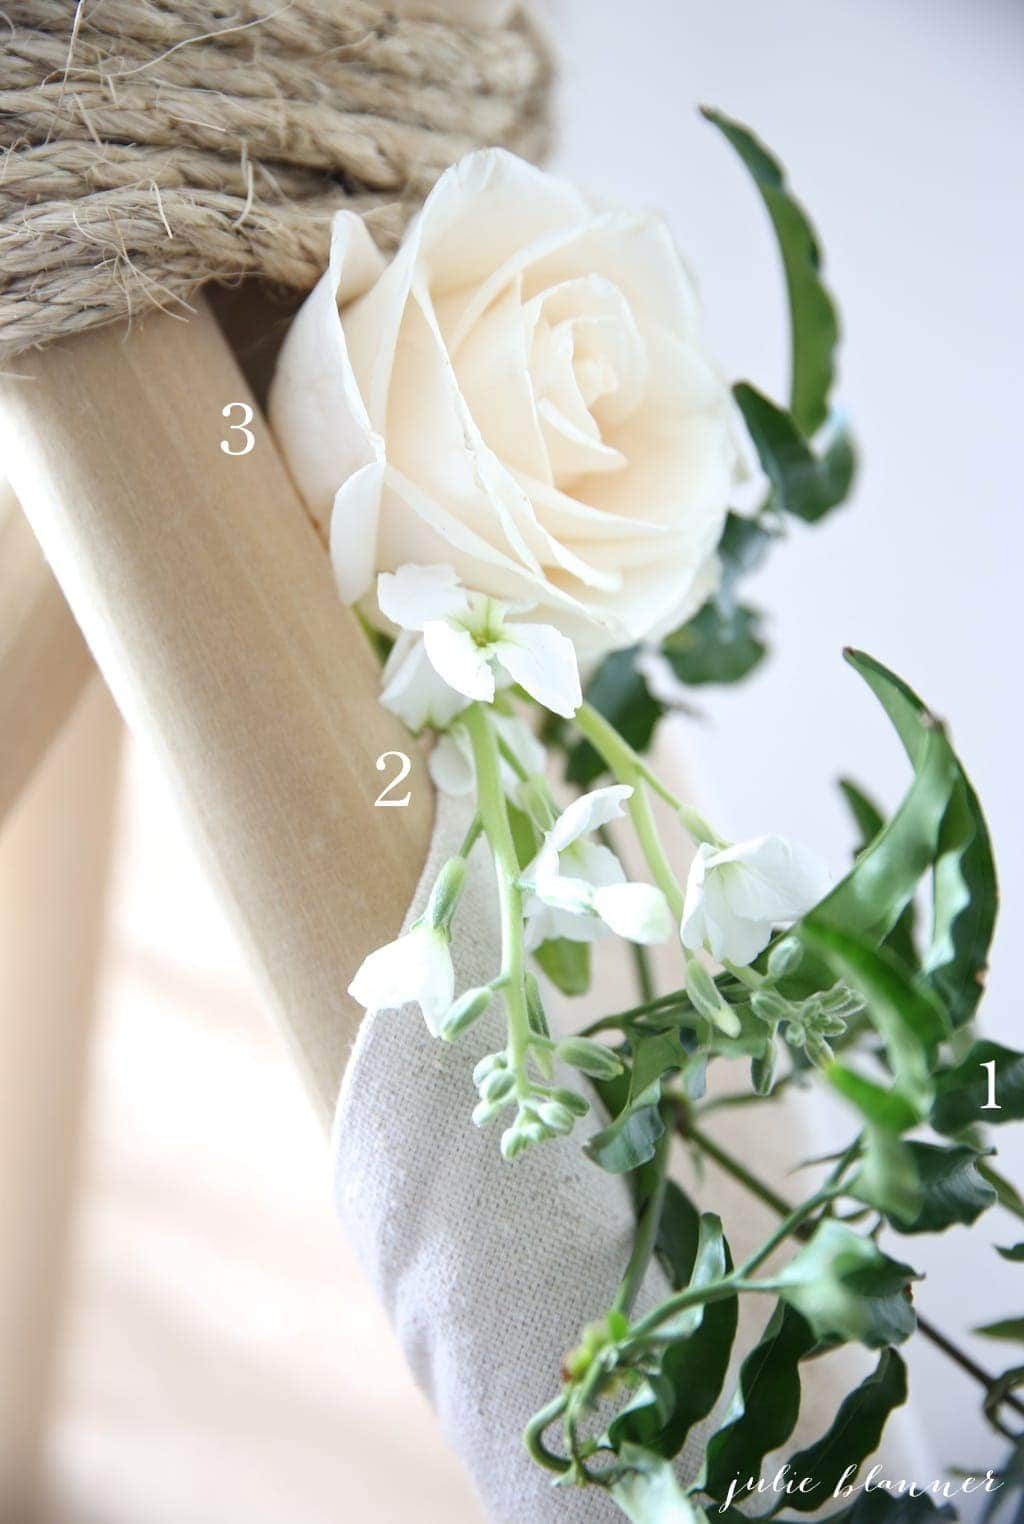 Step by step instructions to arrange grocery store flowers on a teepee